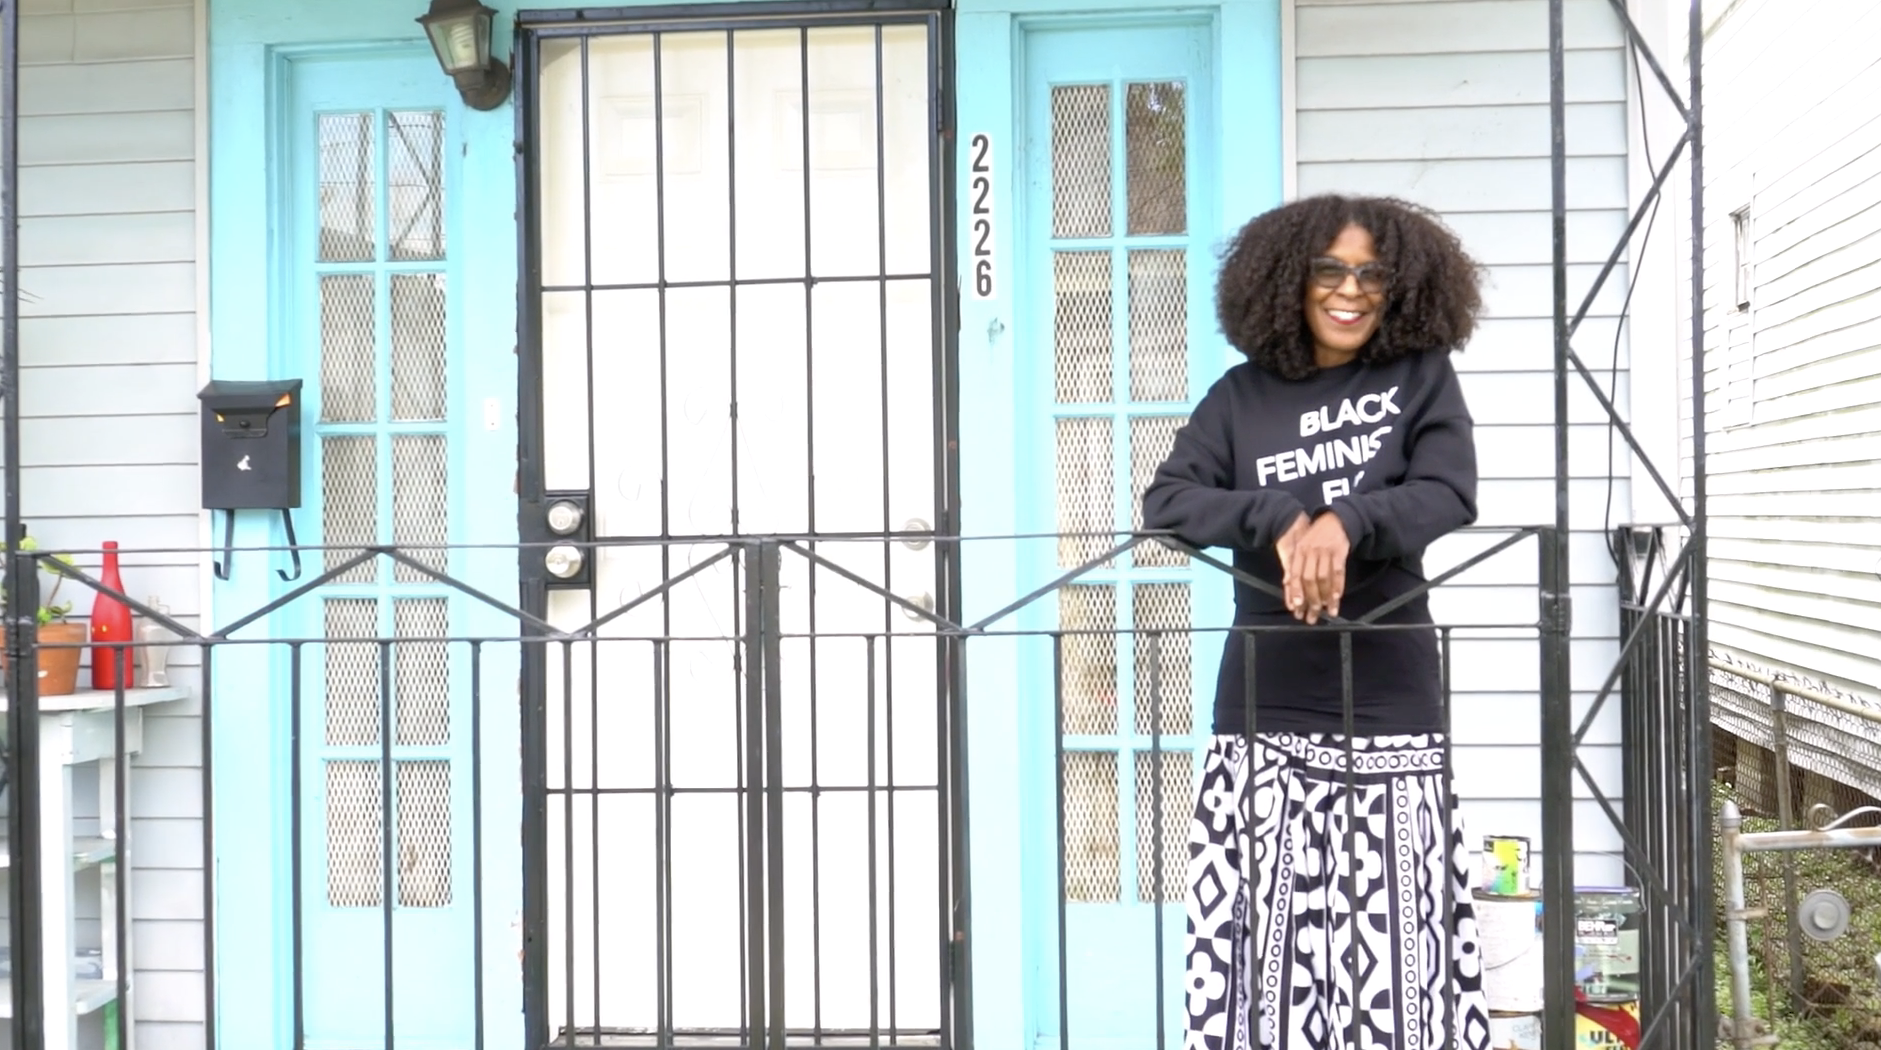 Kai standing in front of her studio with sky blue colored doors, wearing a sweatshirt that reads 'Black Feminist'